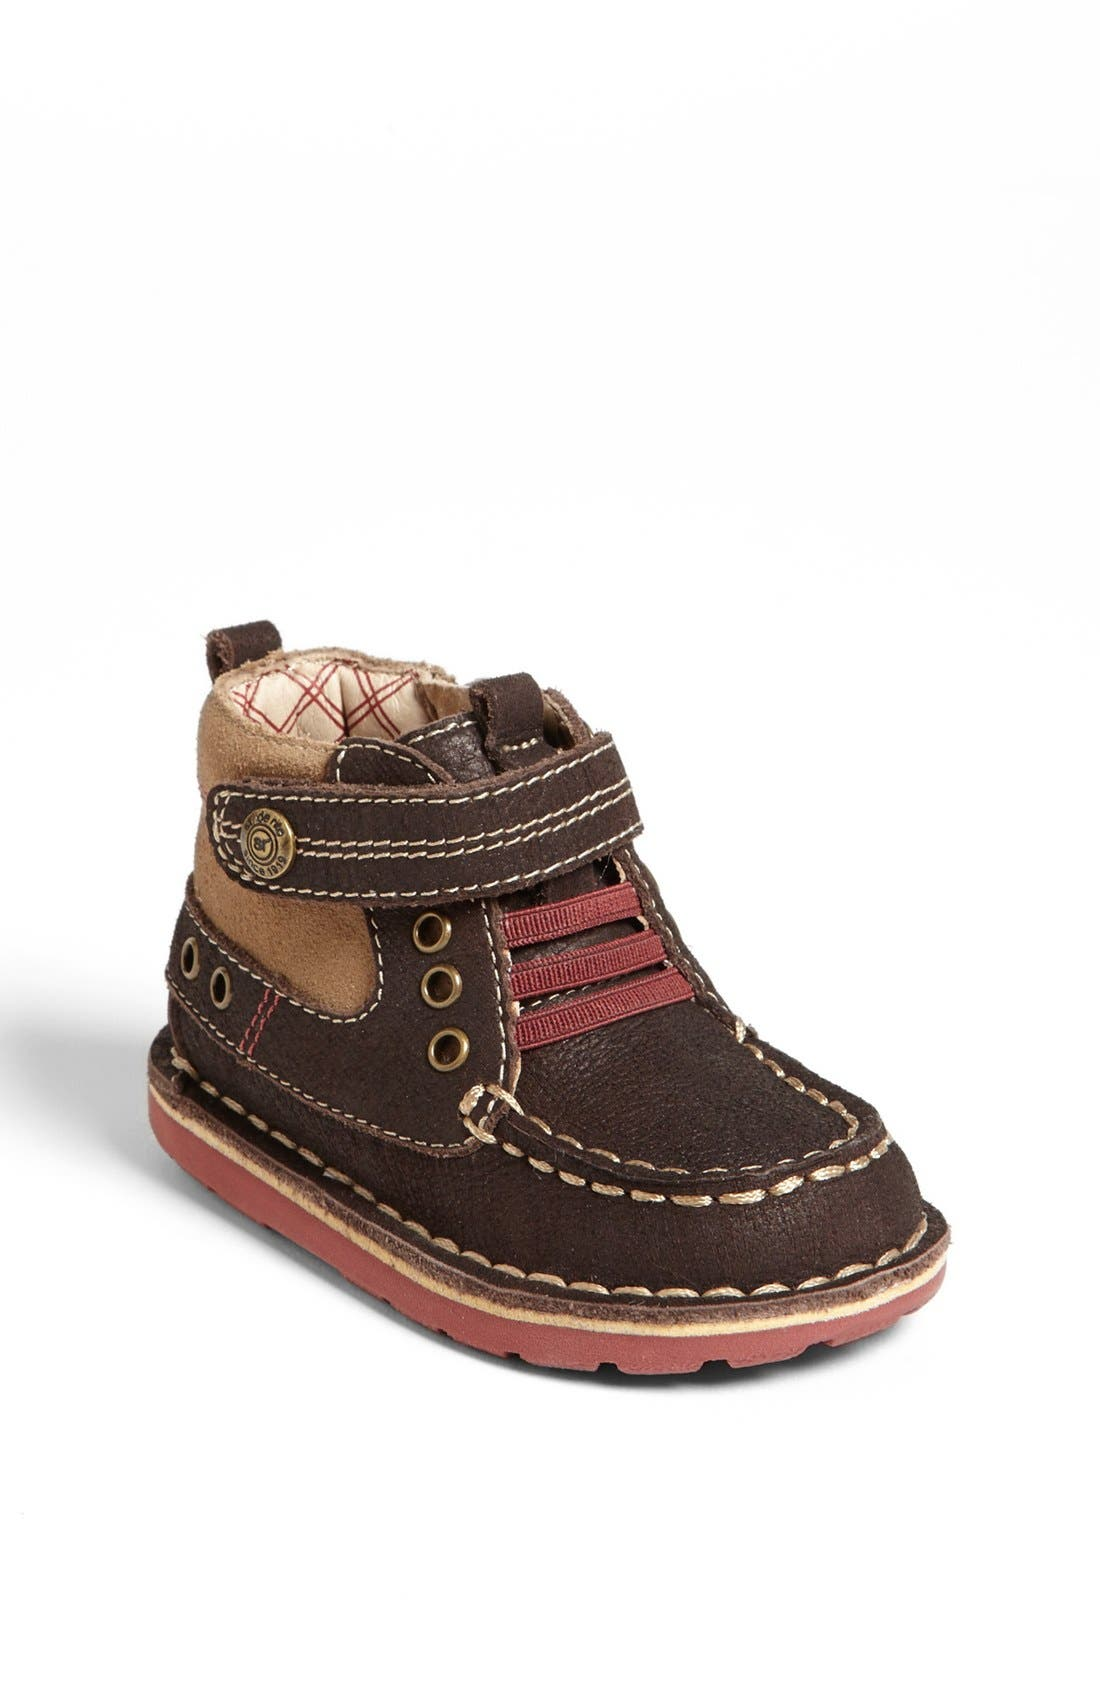 Main Image - Stride Rite 'Medallion Collection - Maxwell' Boot (Baby, Walker & Toddler)